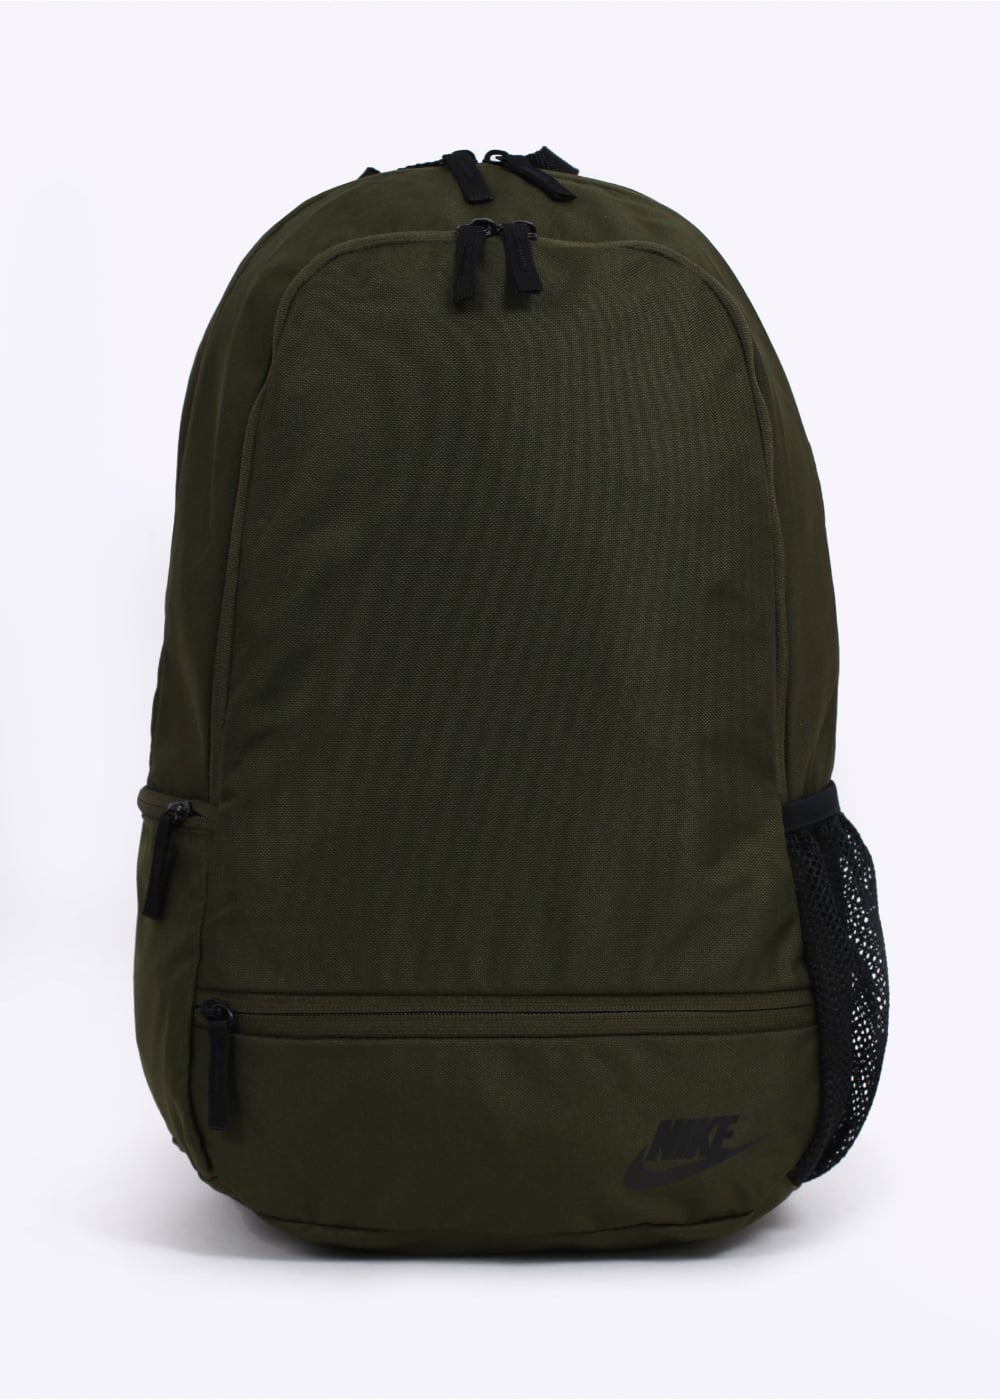 ed122ea6d Nike Apparel Classic North Solid Backpack - Legion Green - Bags from ...